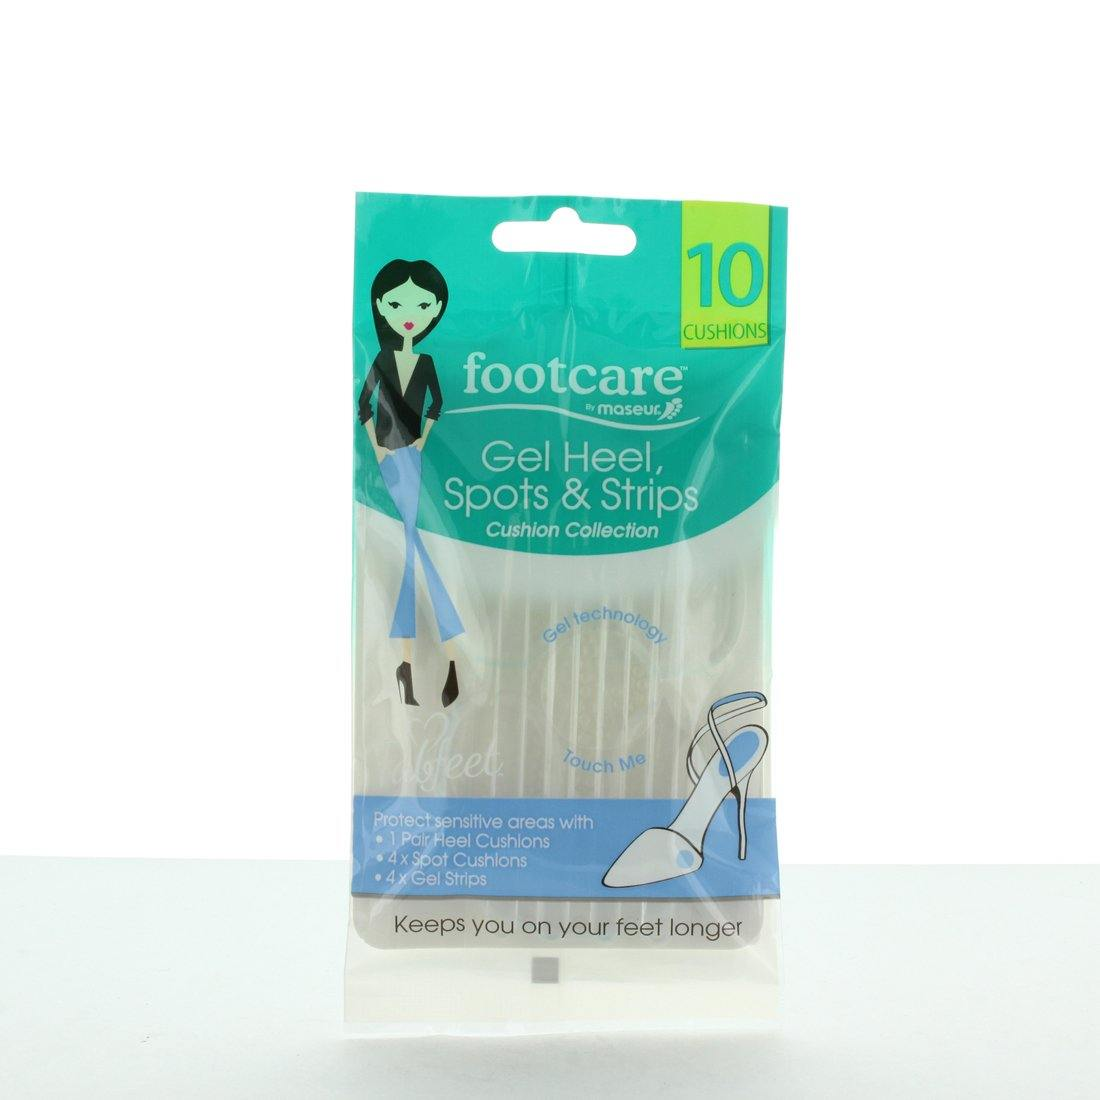 GEL HEEL SPOTS by FOOTCARE - iShoes - Accessories, Accessories: Shoe Care - SHOECARE-UNISEX